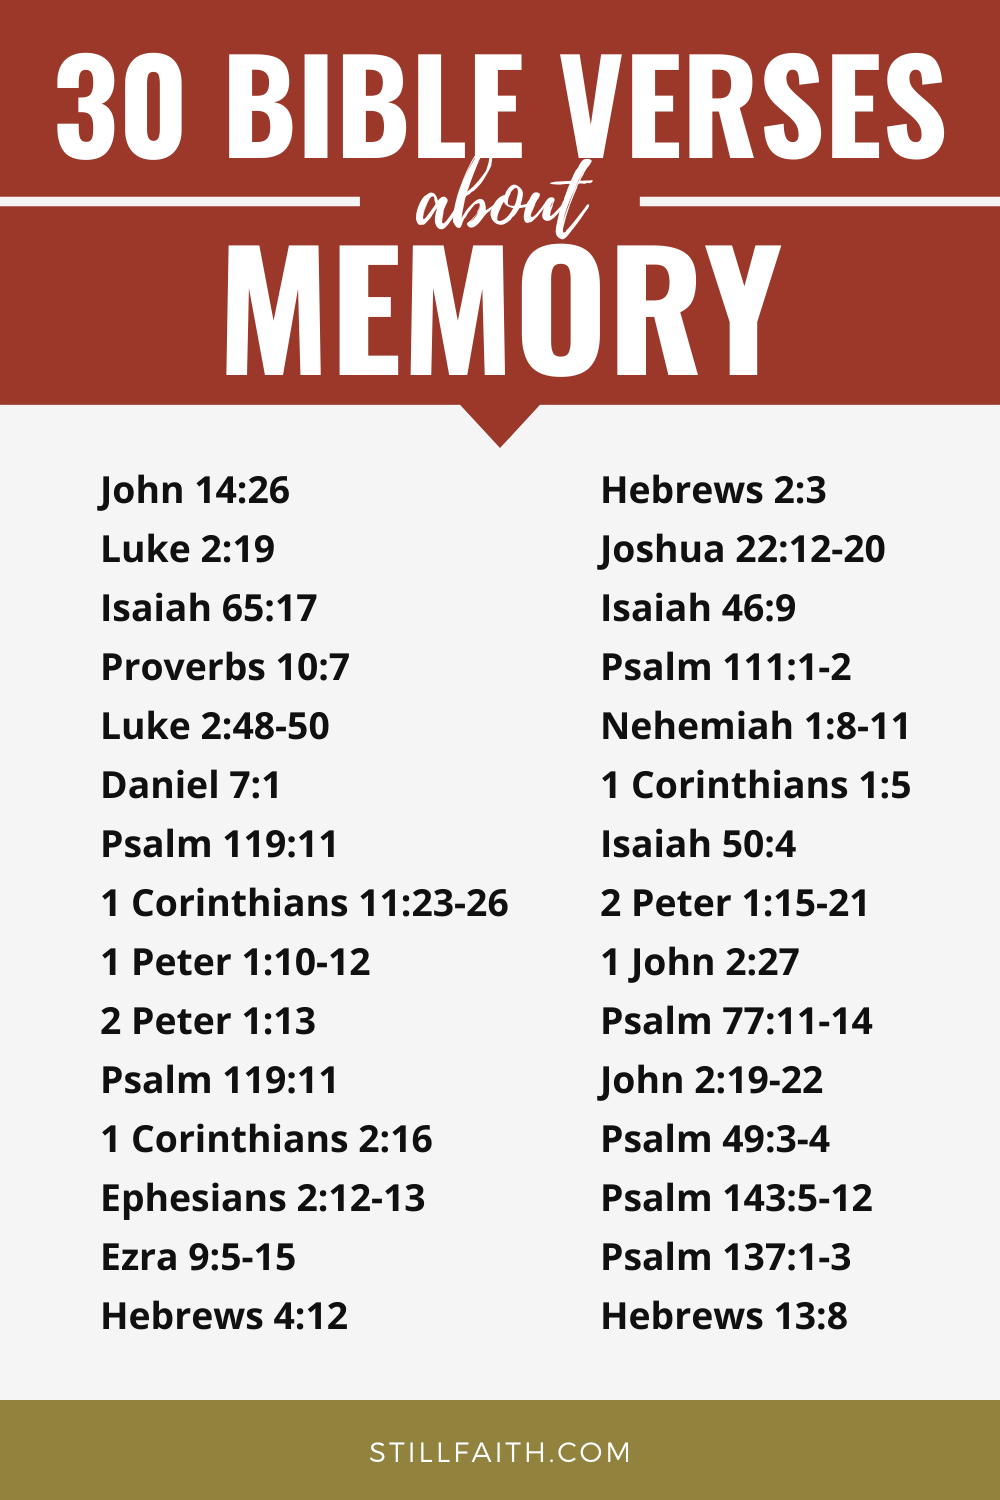 141 Bible Verses about Memory